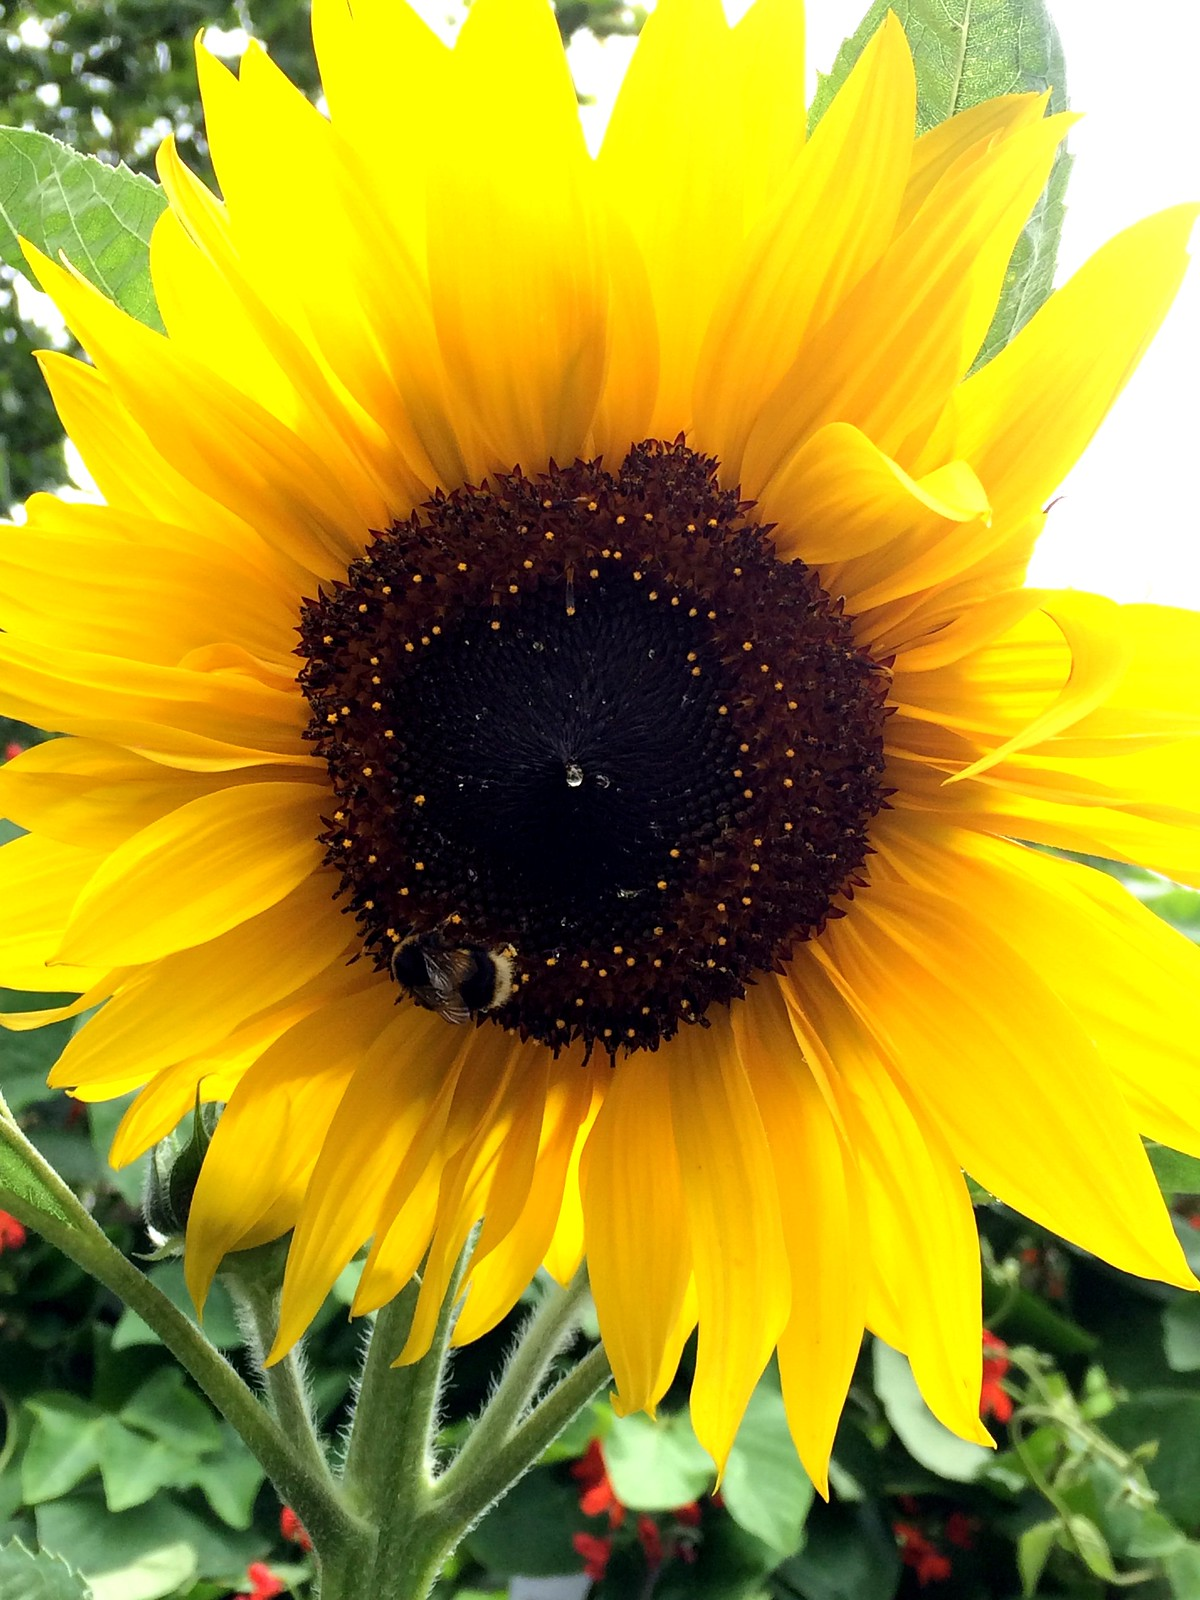 August 20, 2016: Glynde to Seaford Alfriston sunflower & bee